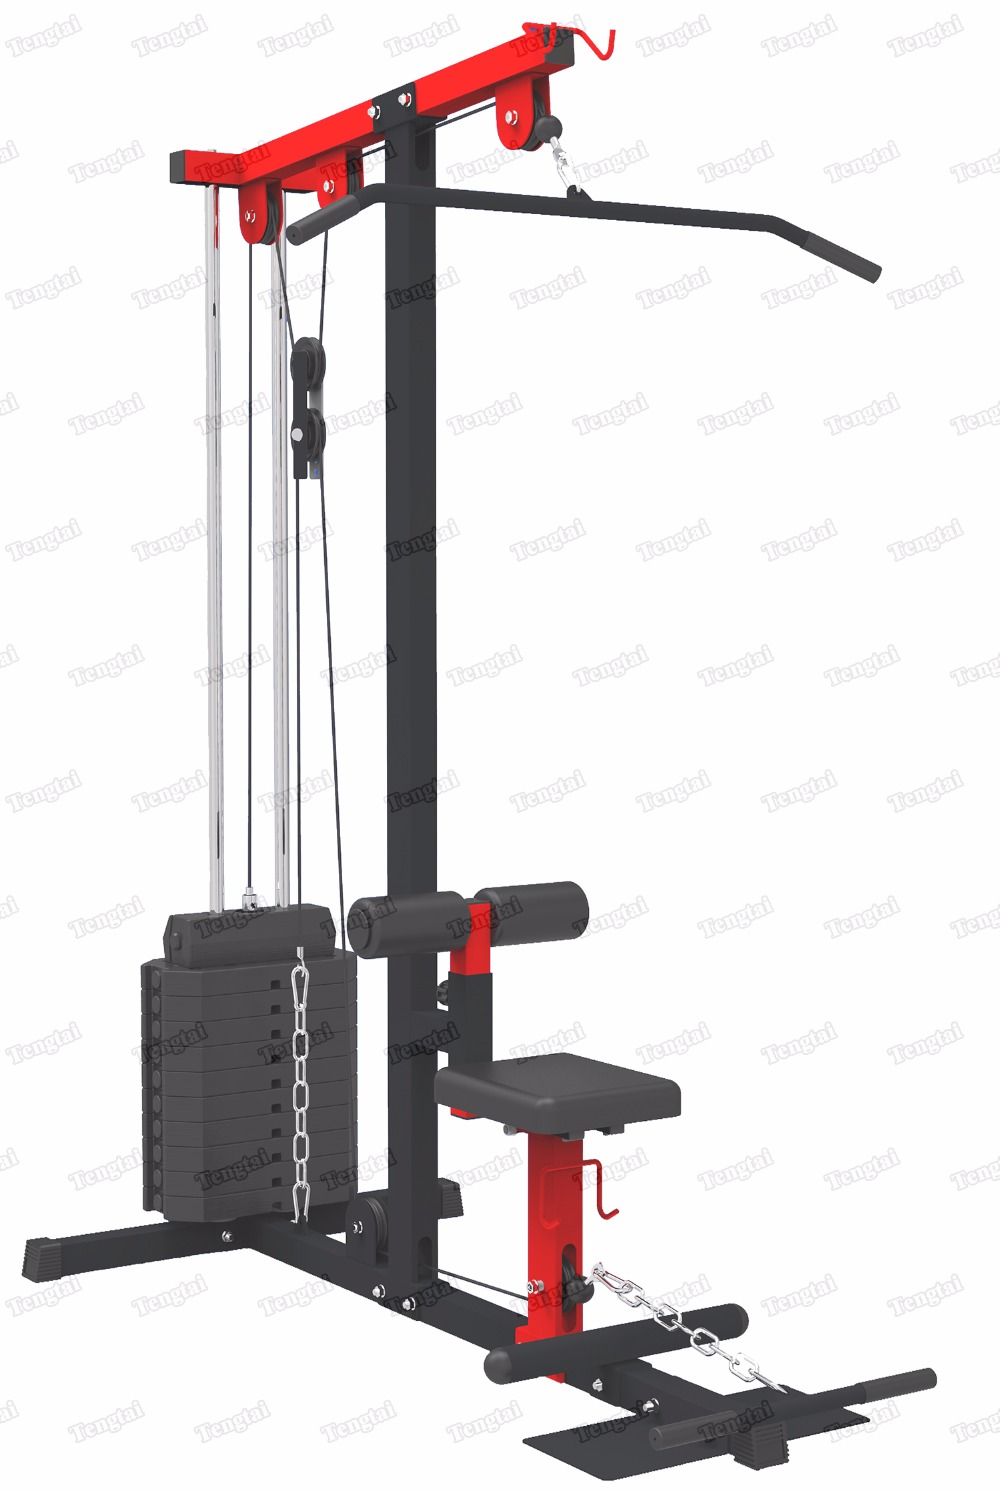 Home Gym Equipment Th053 With Weight Stack Body Building Equipment Gym Equipment Home Gymequipment Gym Aliexpress